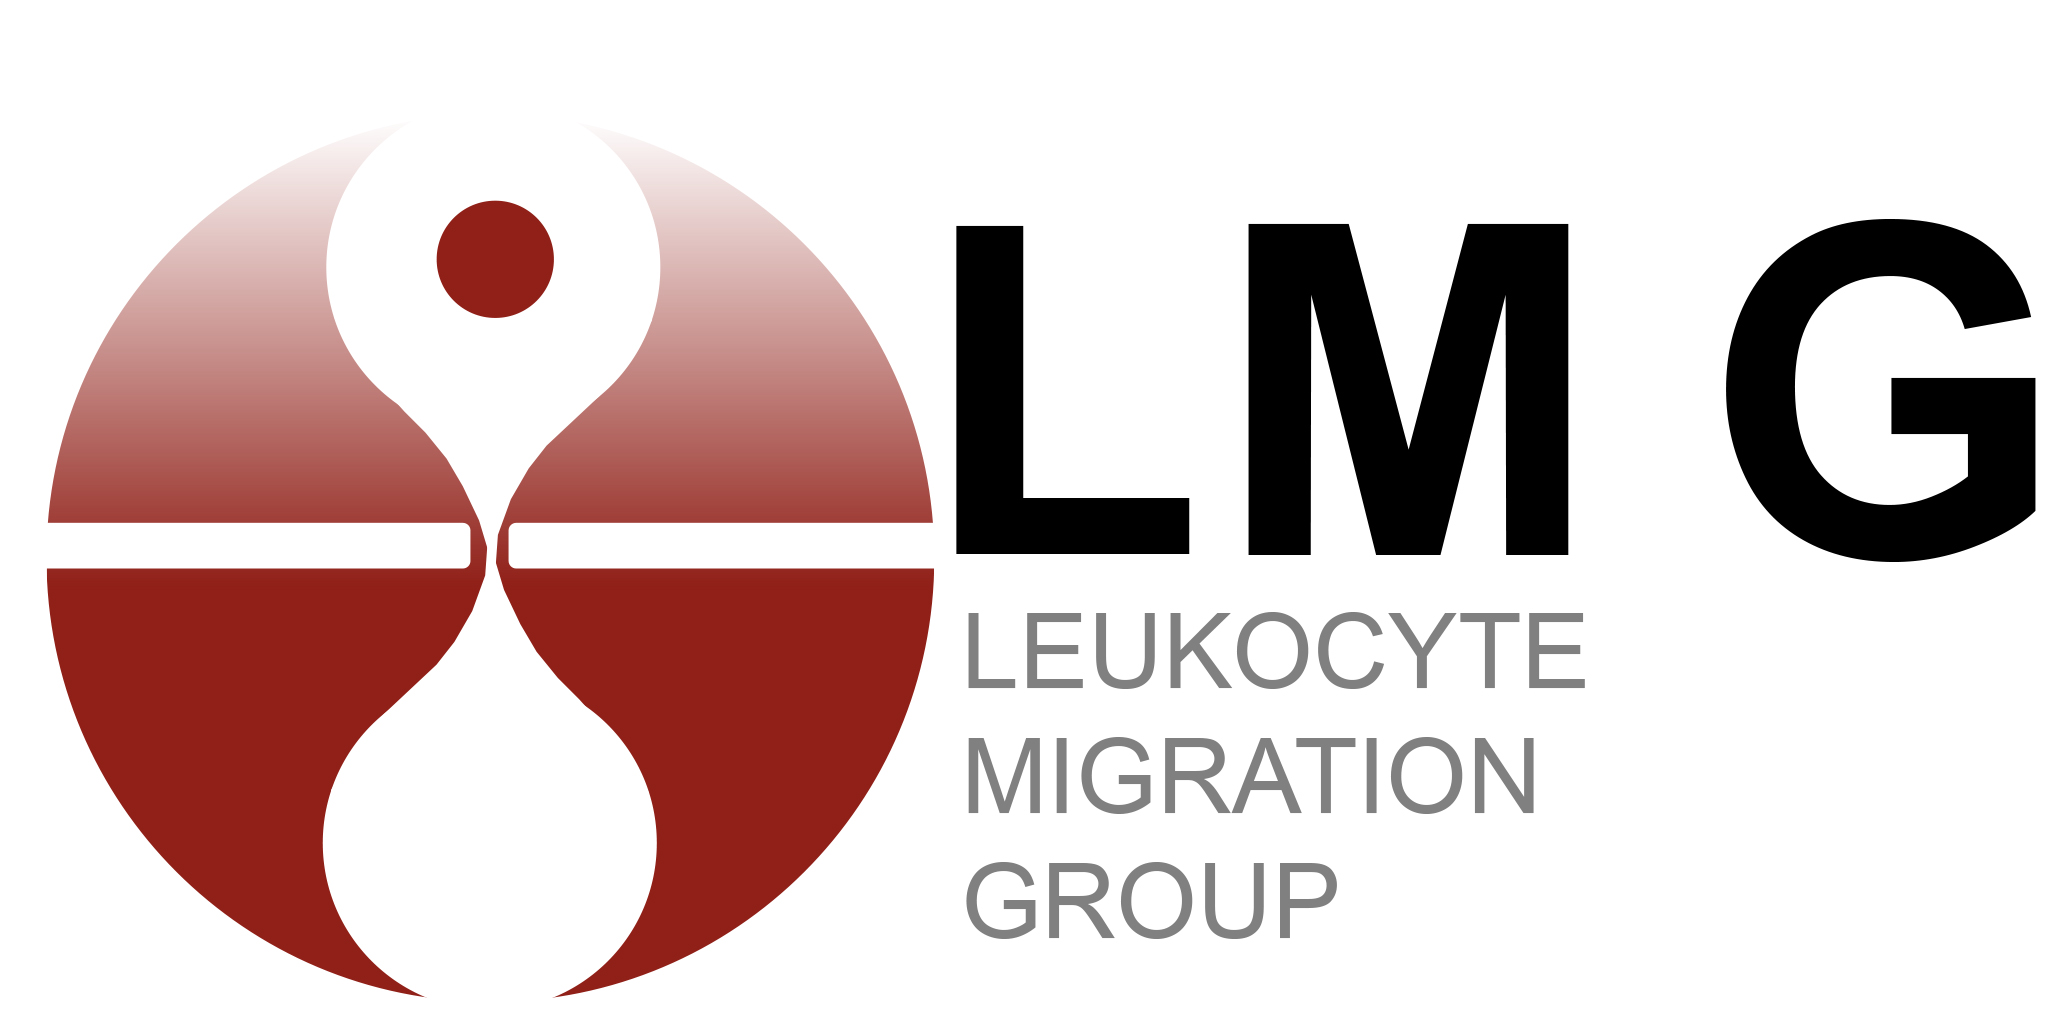 Leukocyte Migration Group logo